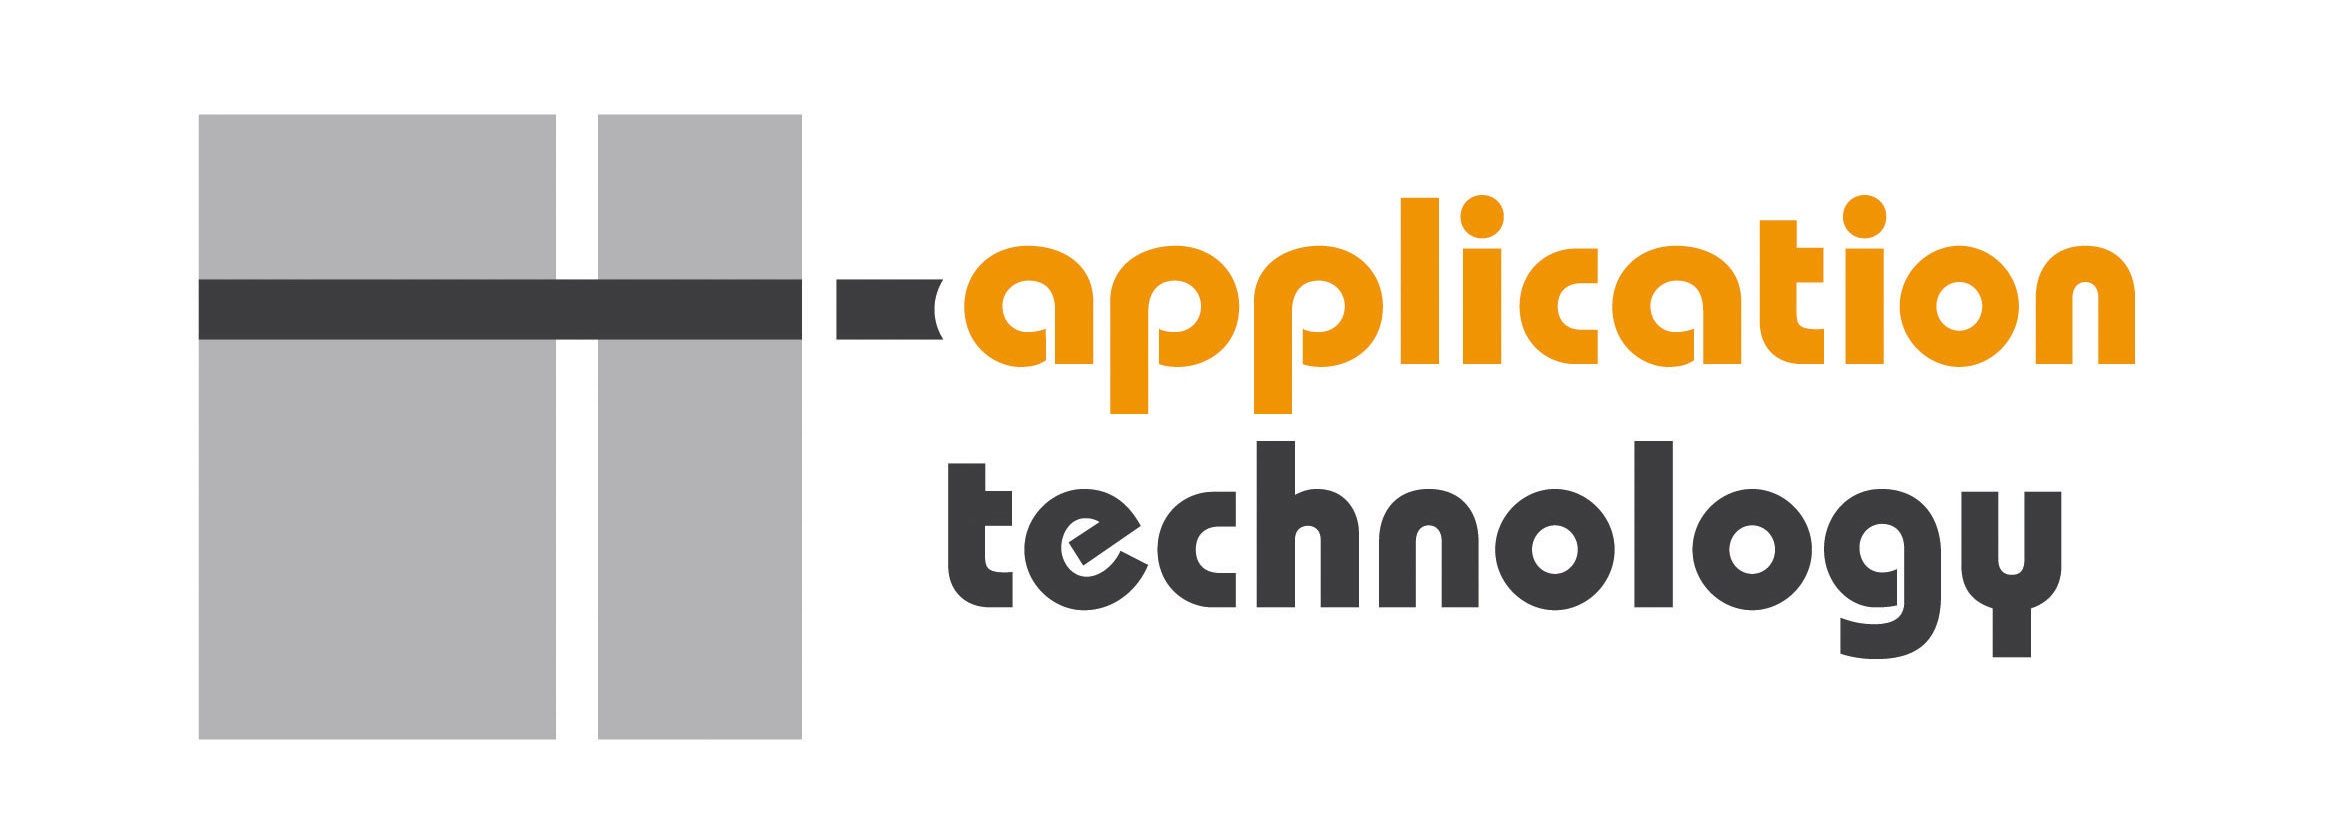 applicationtechnology